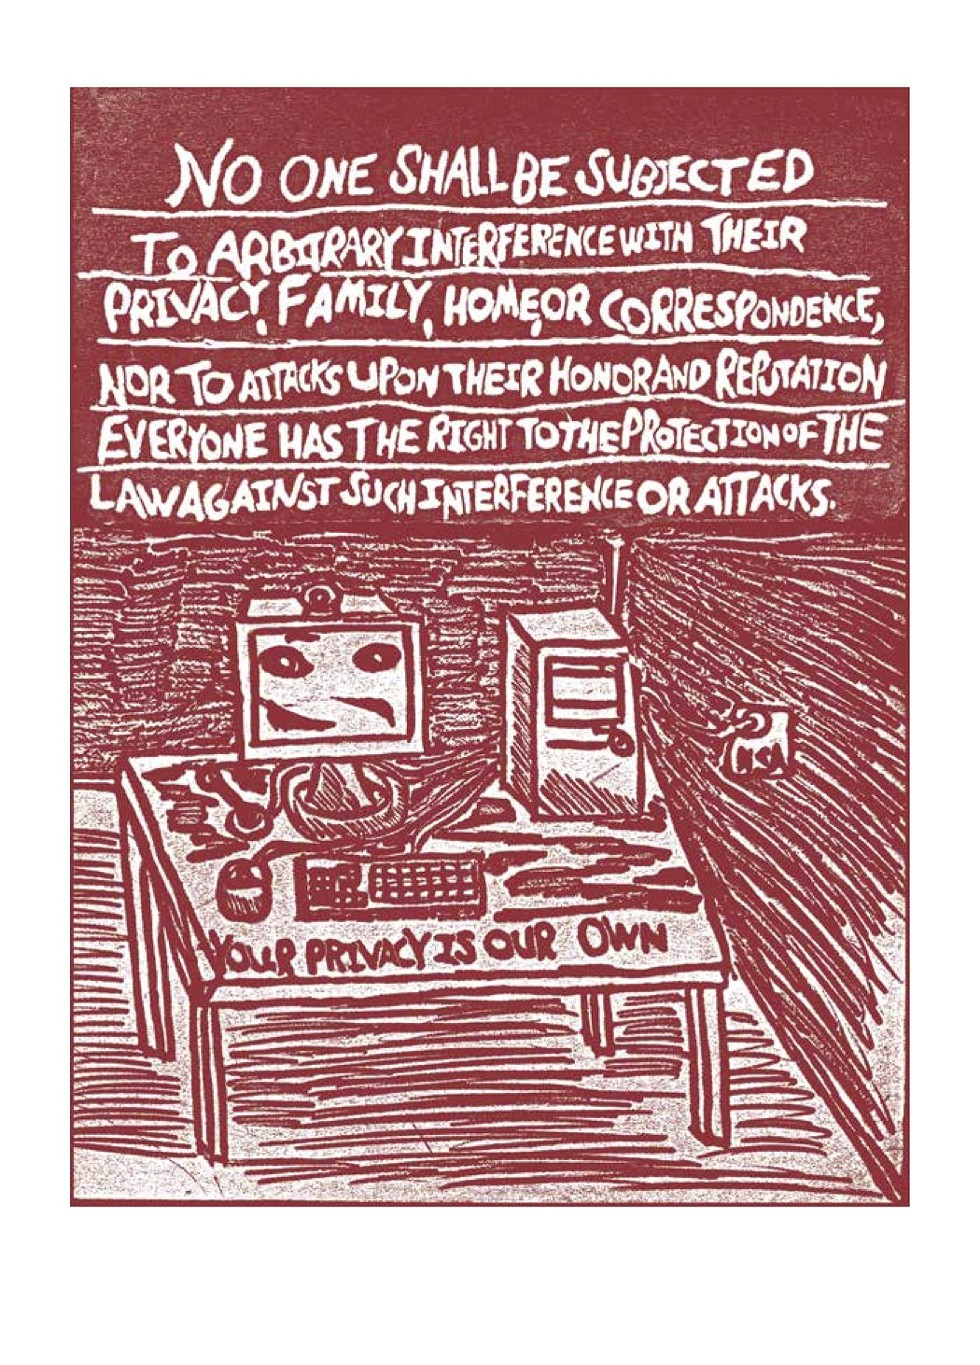 Alex Koehler's illustration of UDHR Article 12 as seen in Carving Out Rights - ALEX KOEHLER/COURTESY HAT & BEARD PRESS